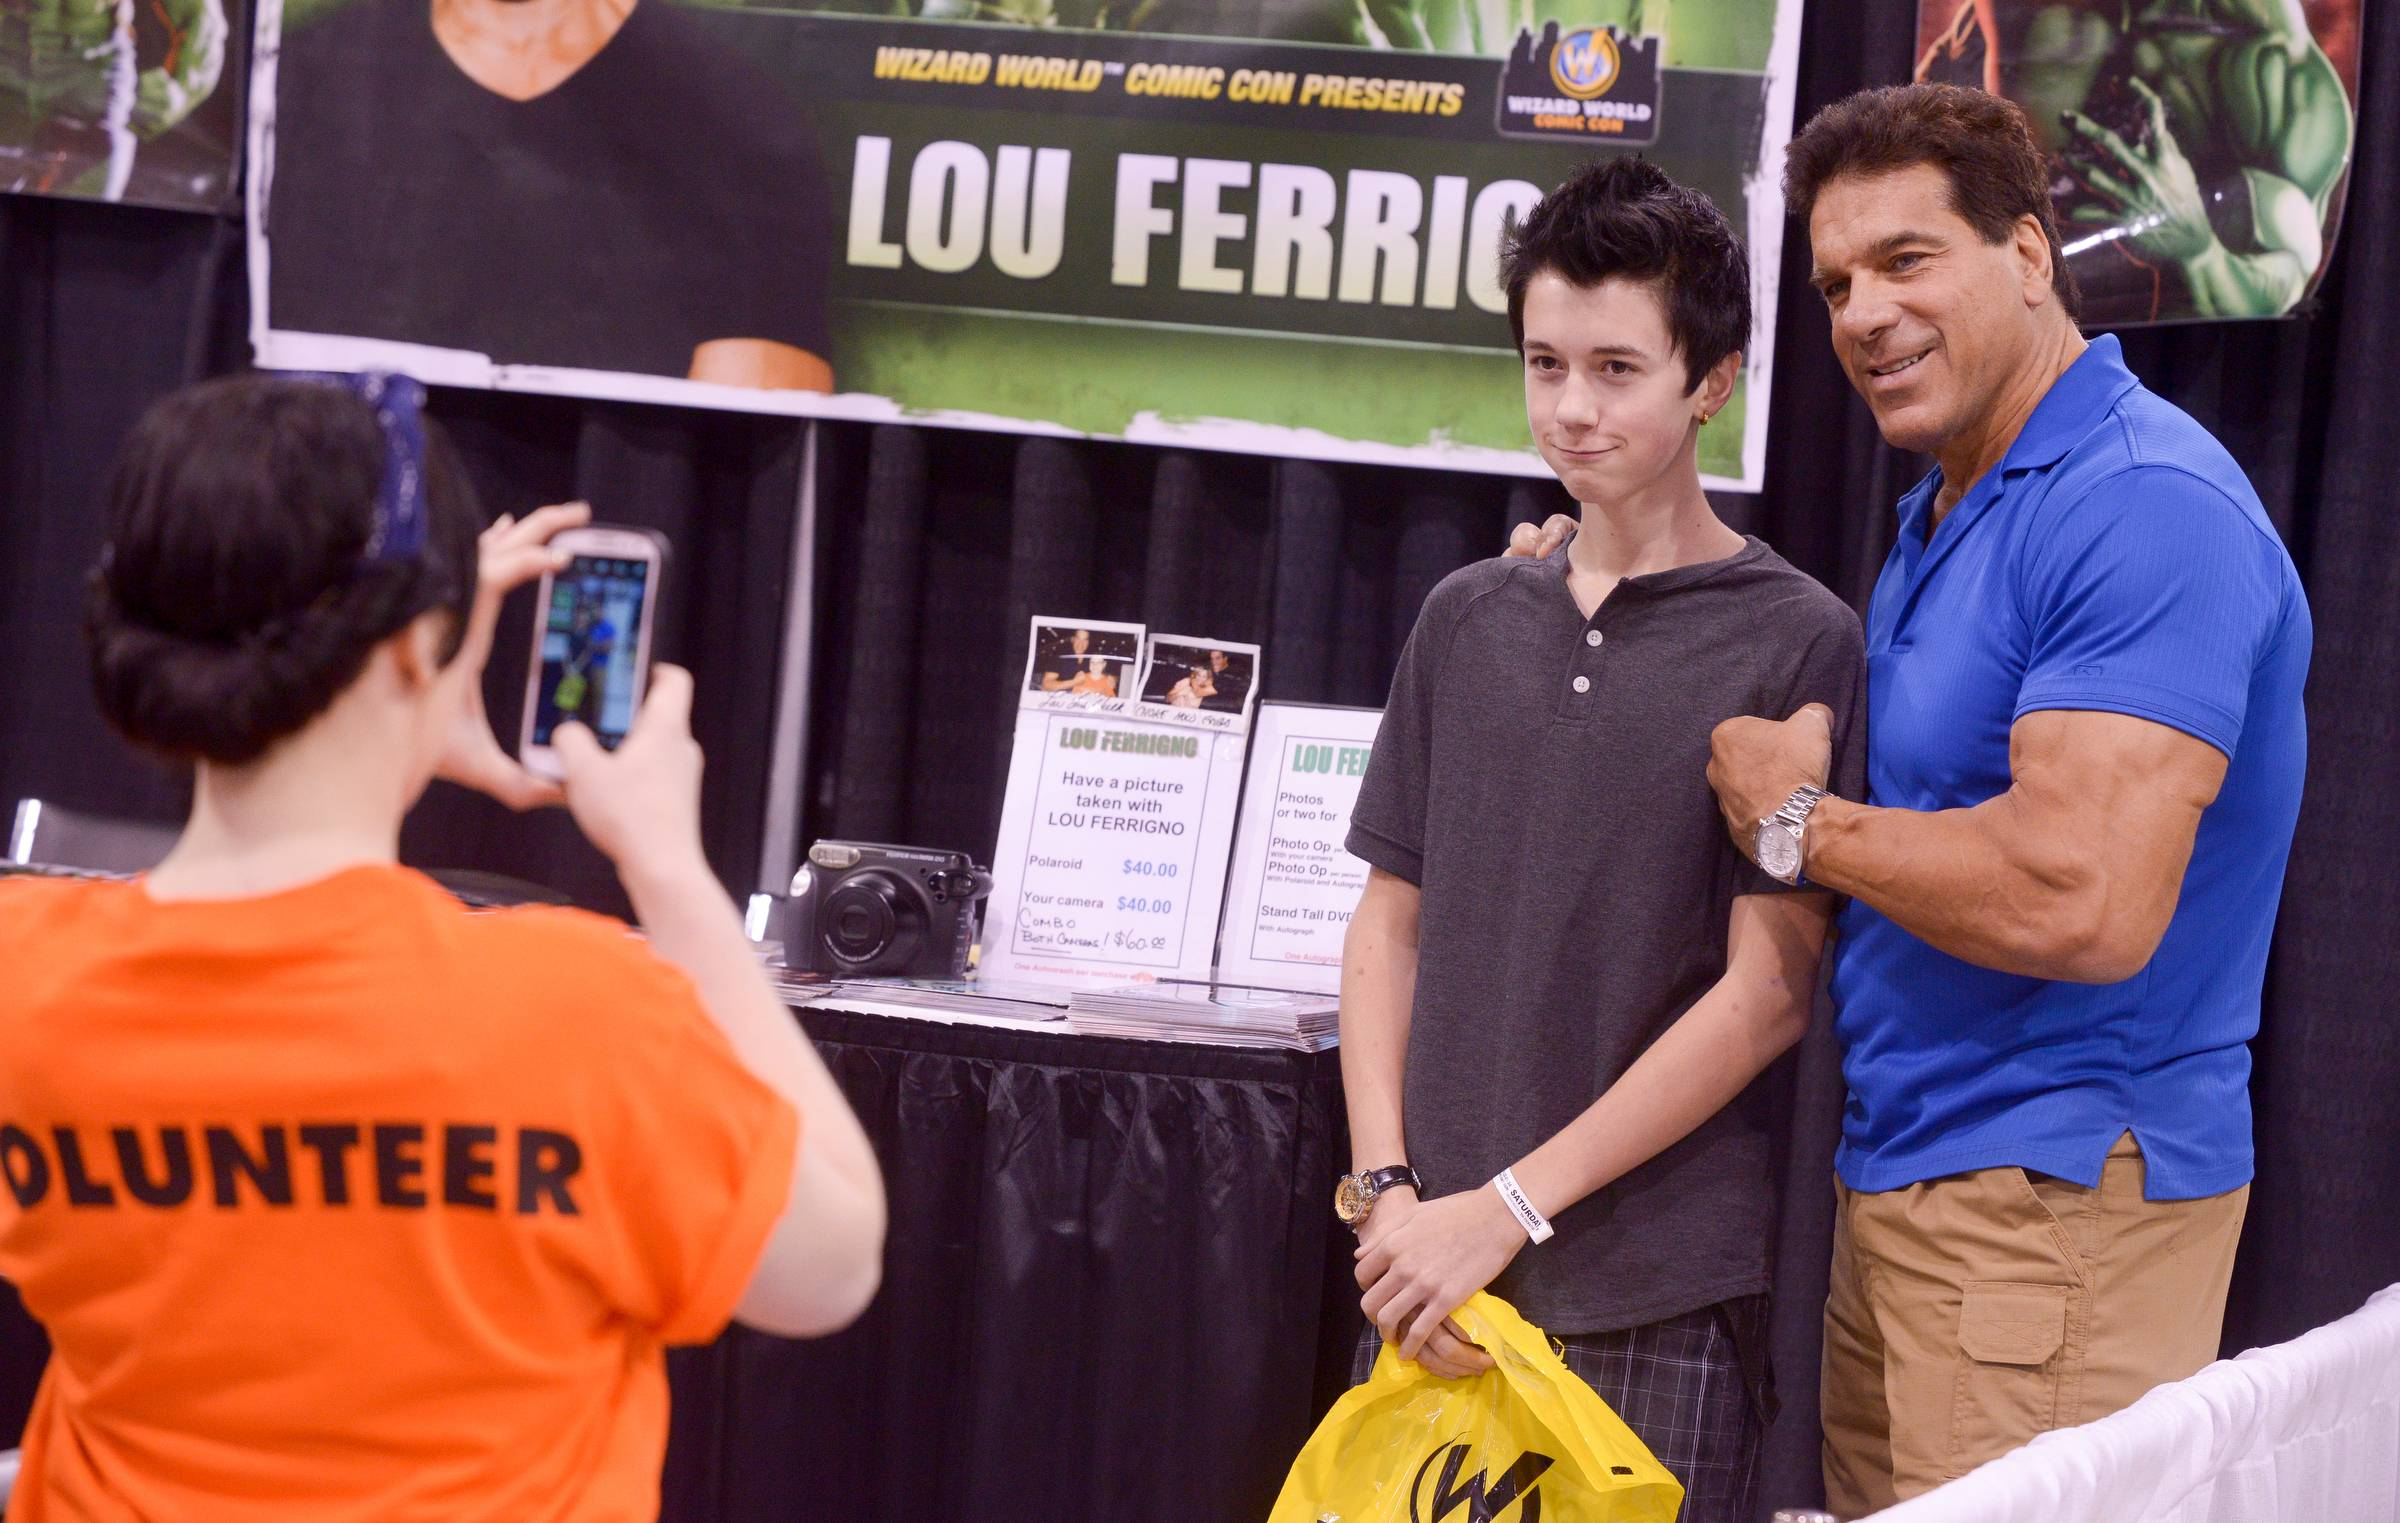 Images from Wizard World Chicago Comic Con in Rosemont